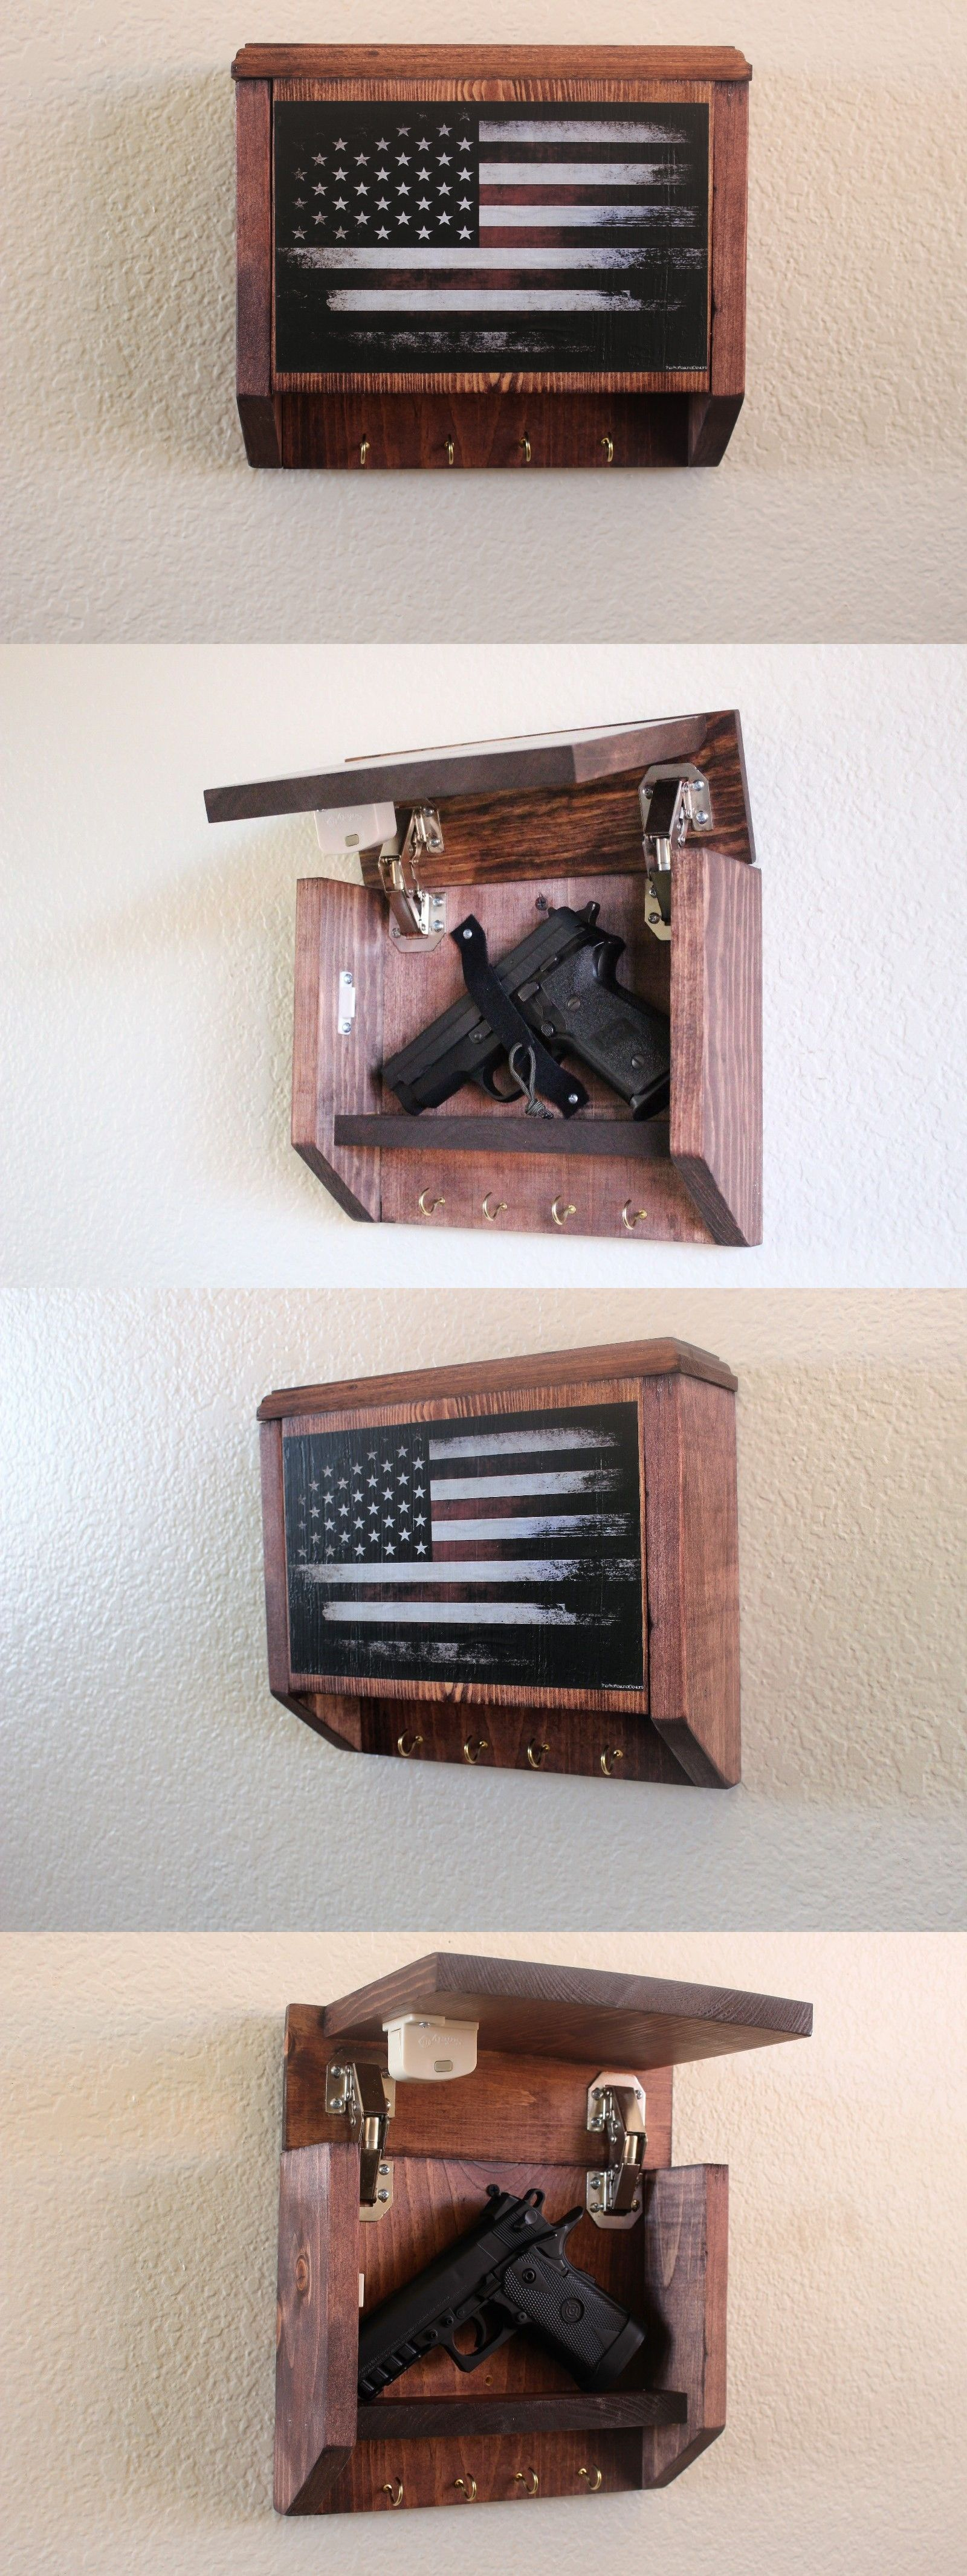 Cabinets and safes 177877 hidden gun storage key rack vintage cabinets and safes 177877 hidden gun storage key rack vintage american flag with magnetic lock amipublicfo Image collections